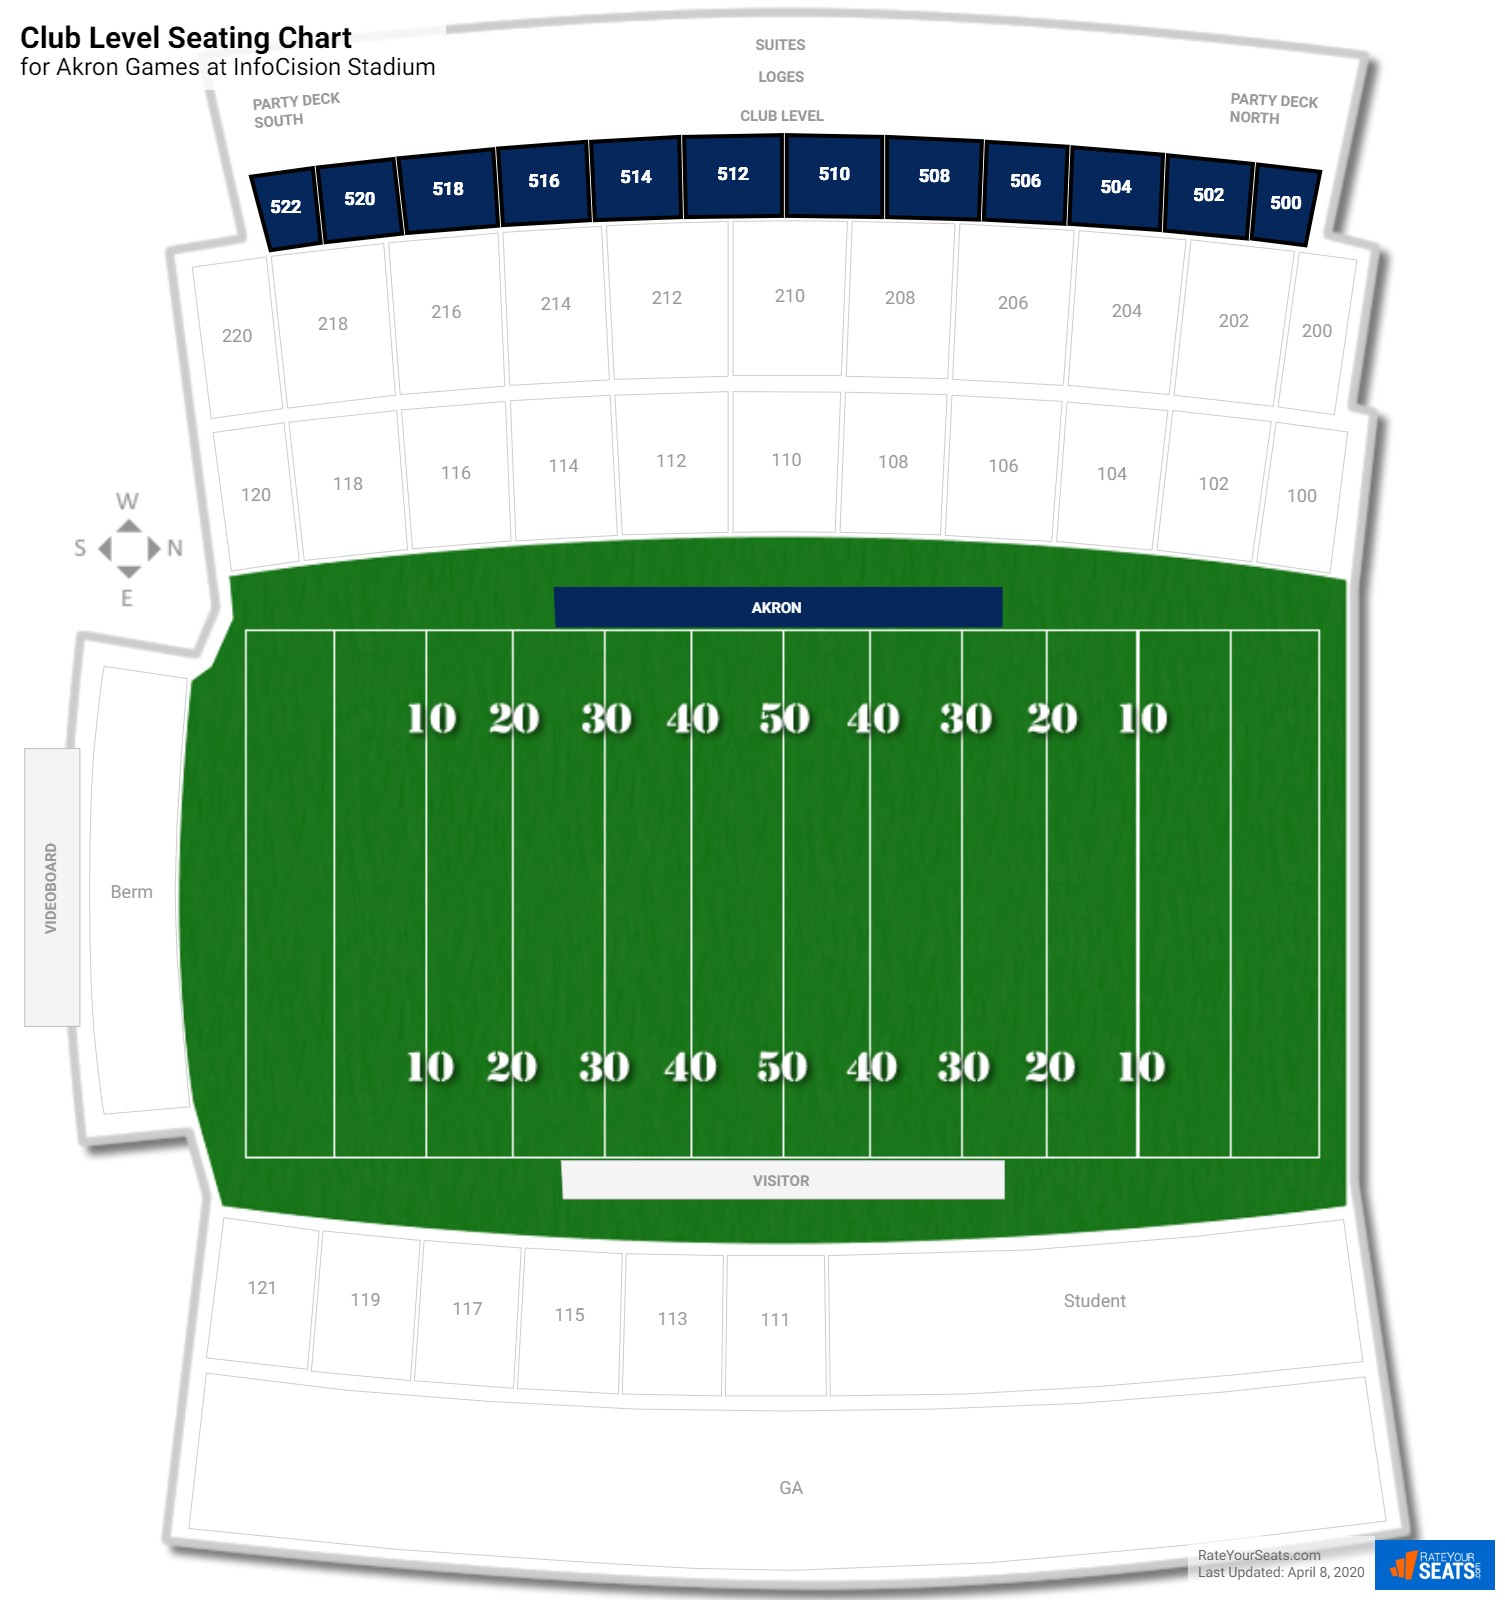 InfoCision Stadium Club Level seating chart